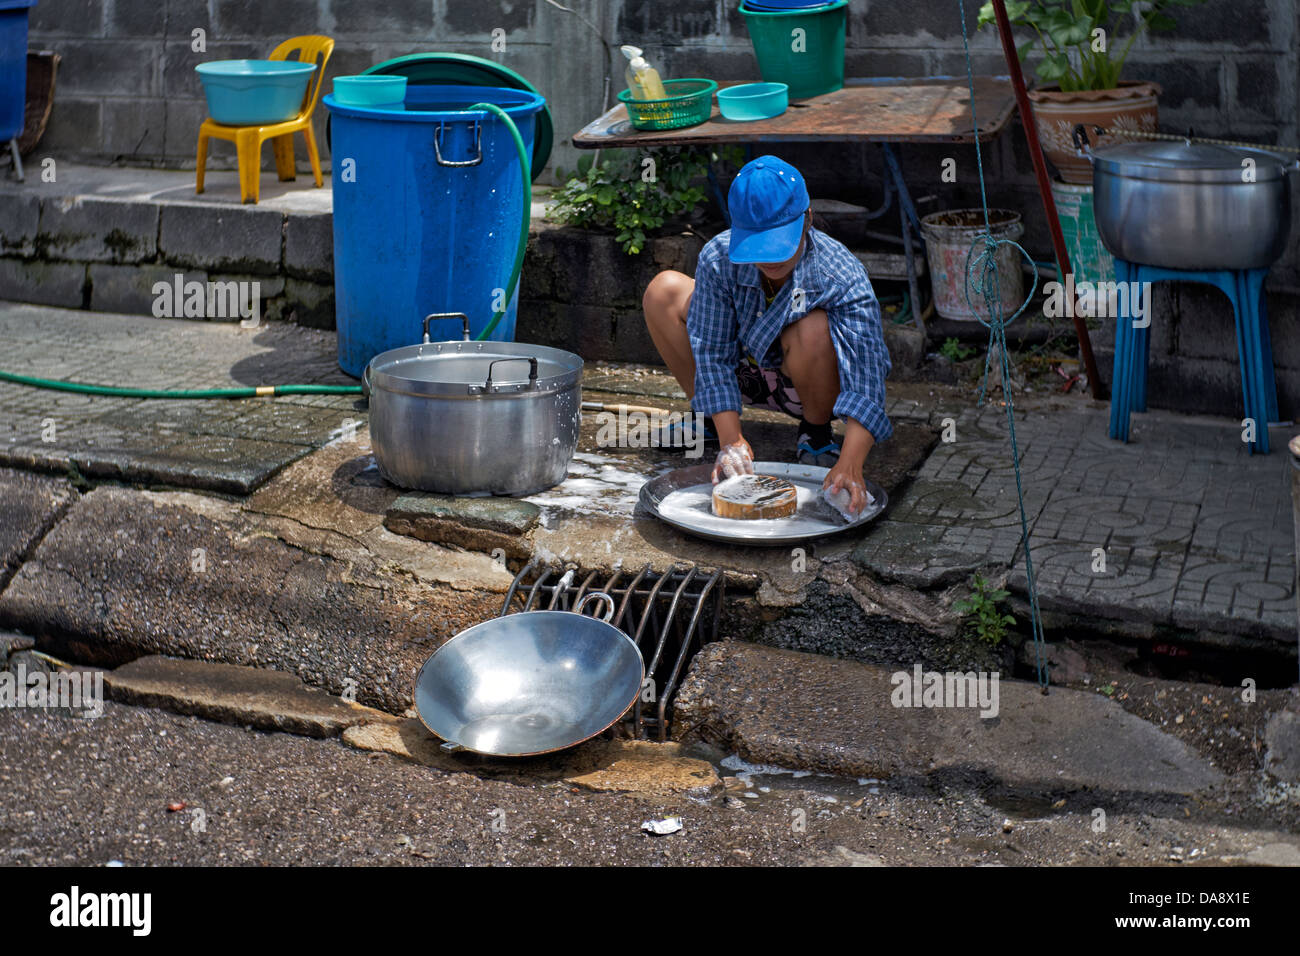 Person washing pots and pans on a Thai sidewalk. Thailand street scene. S. E. Asia - Stock Image